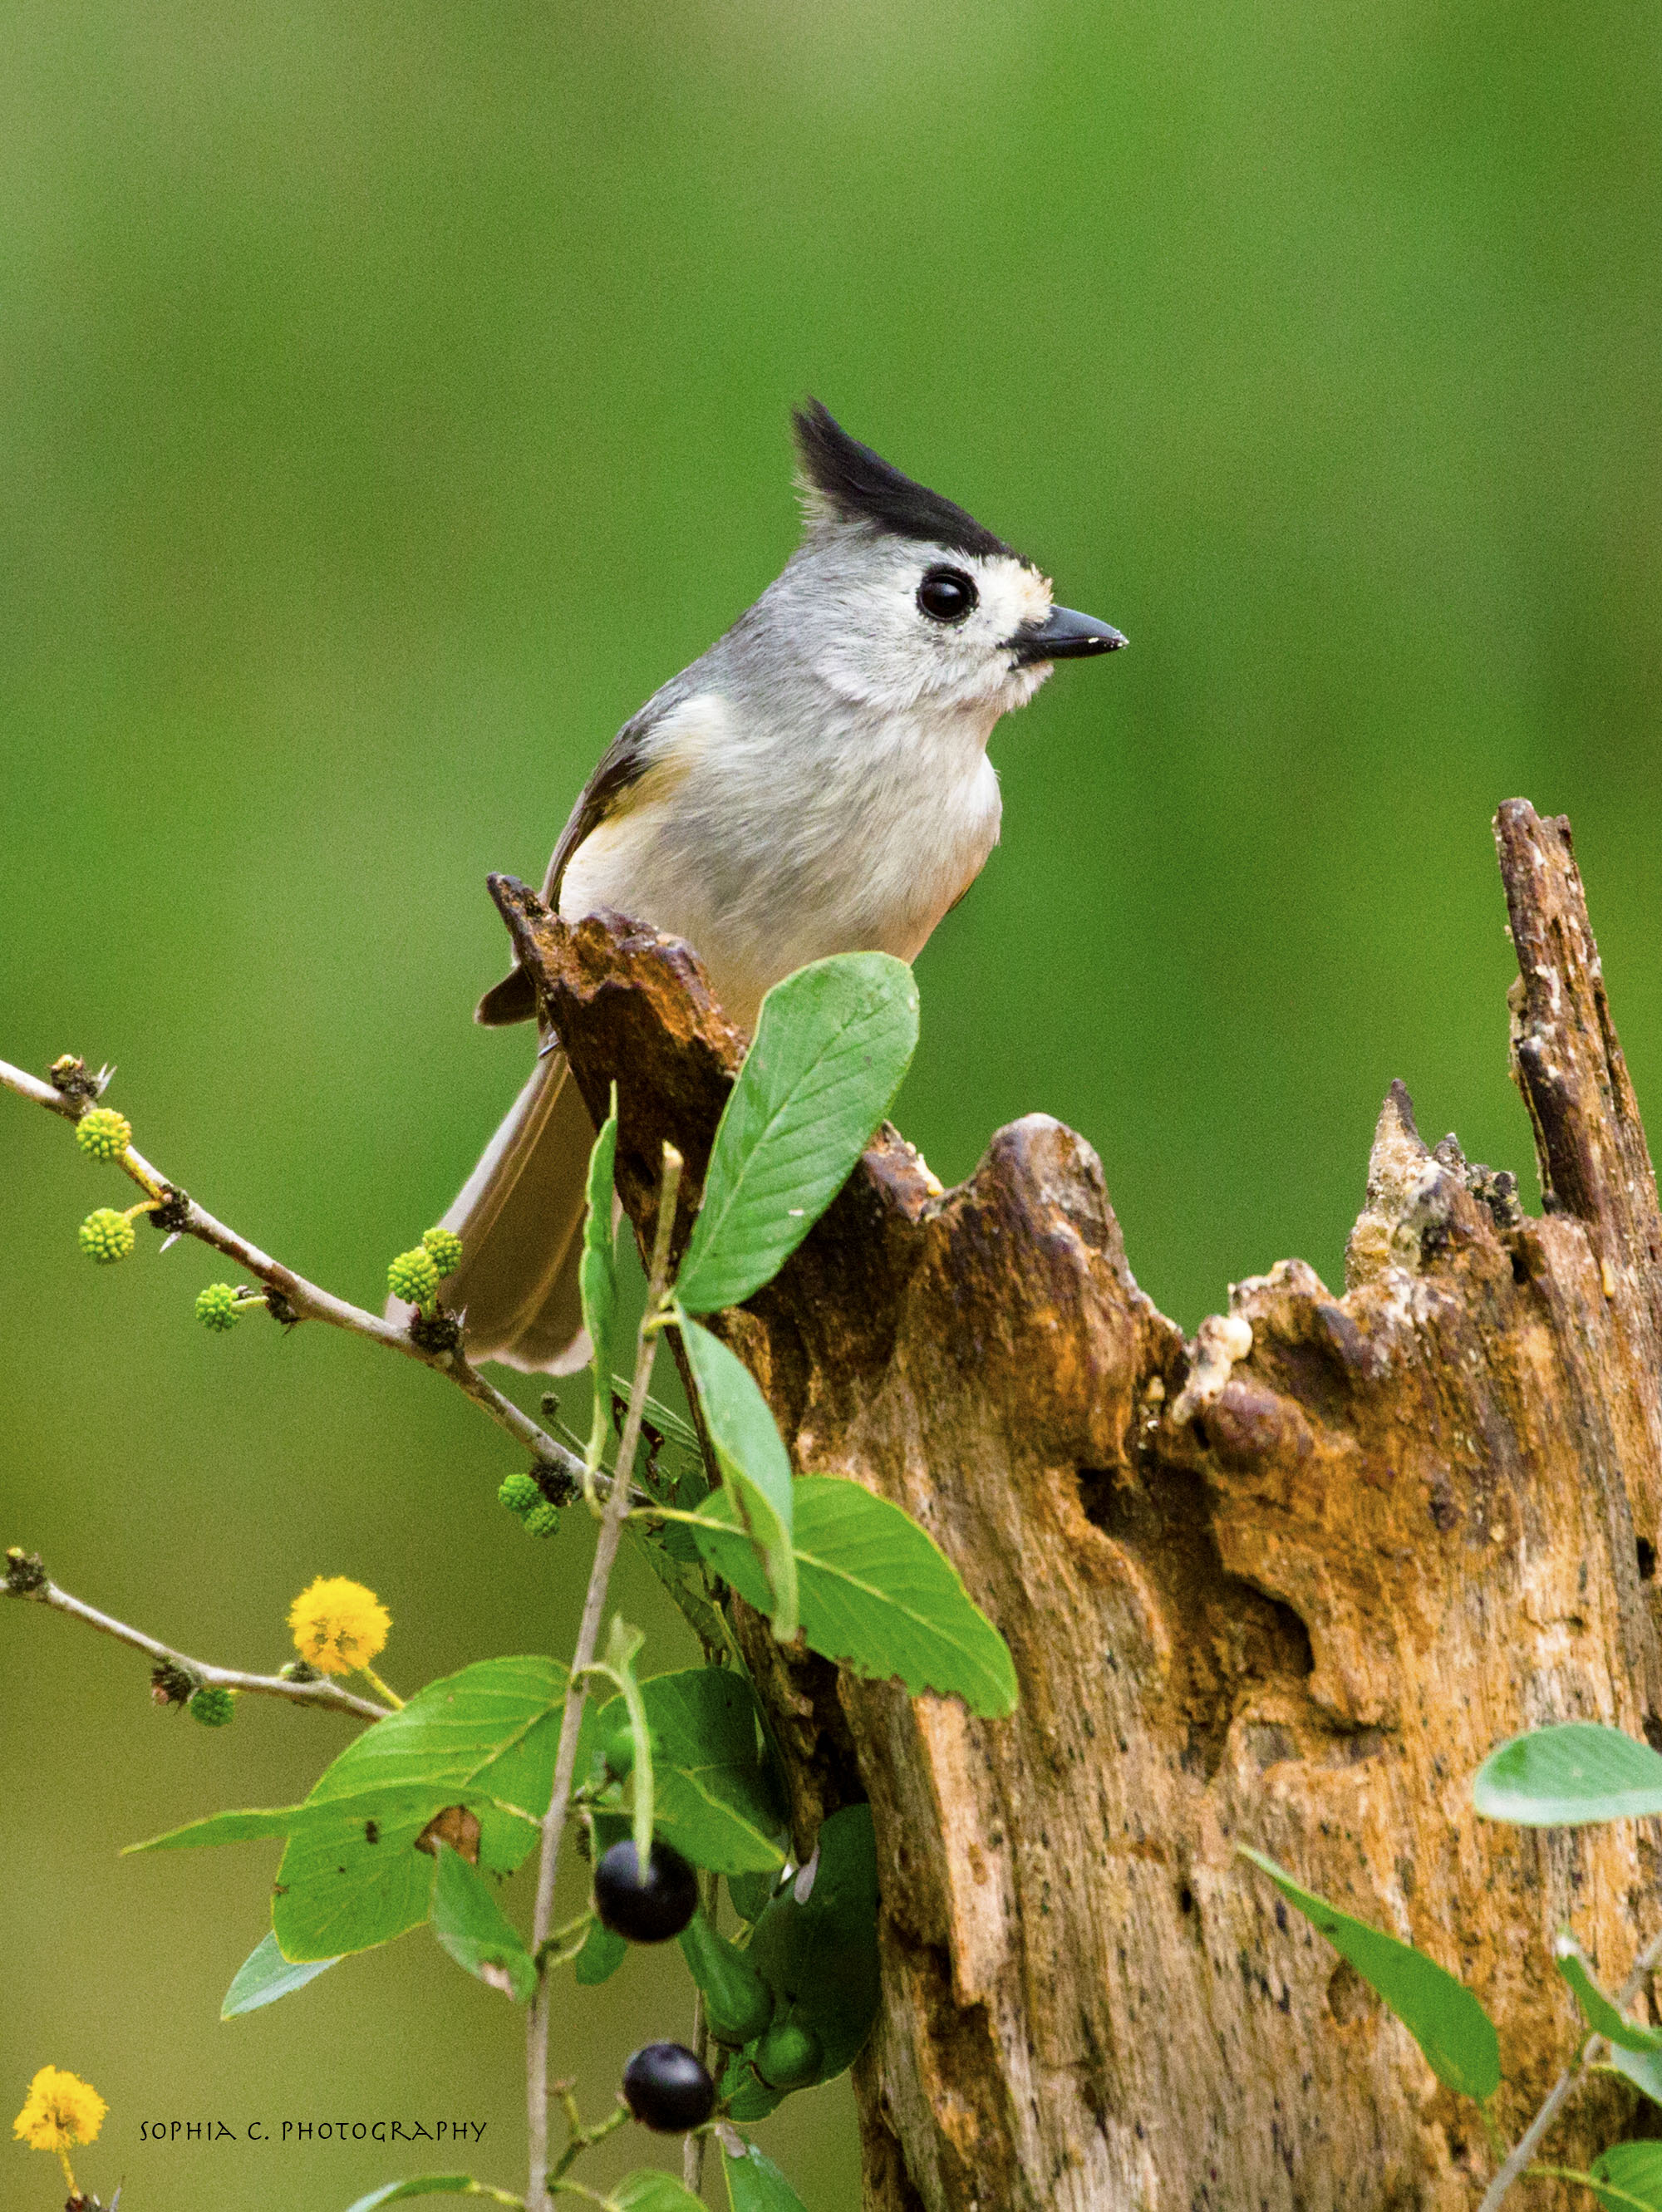 4. Black-crested titmouse.